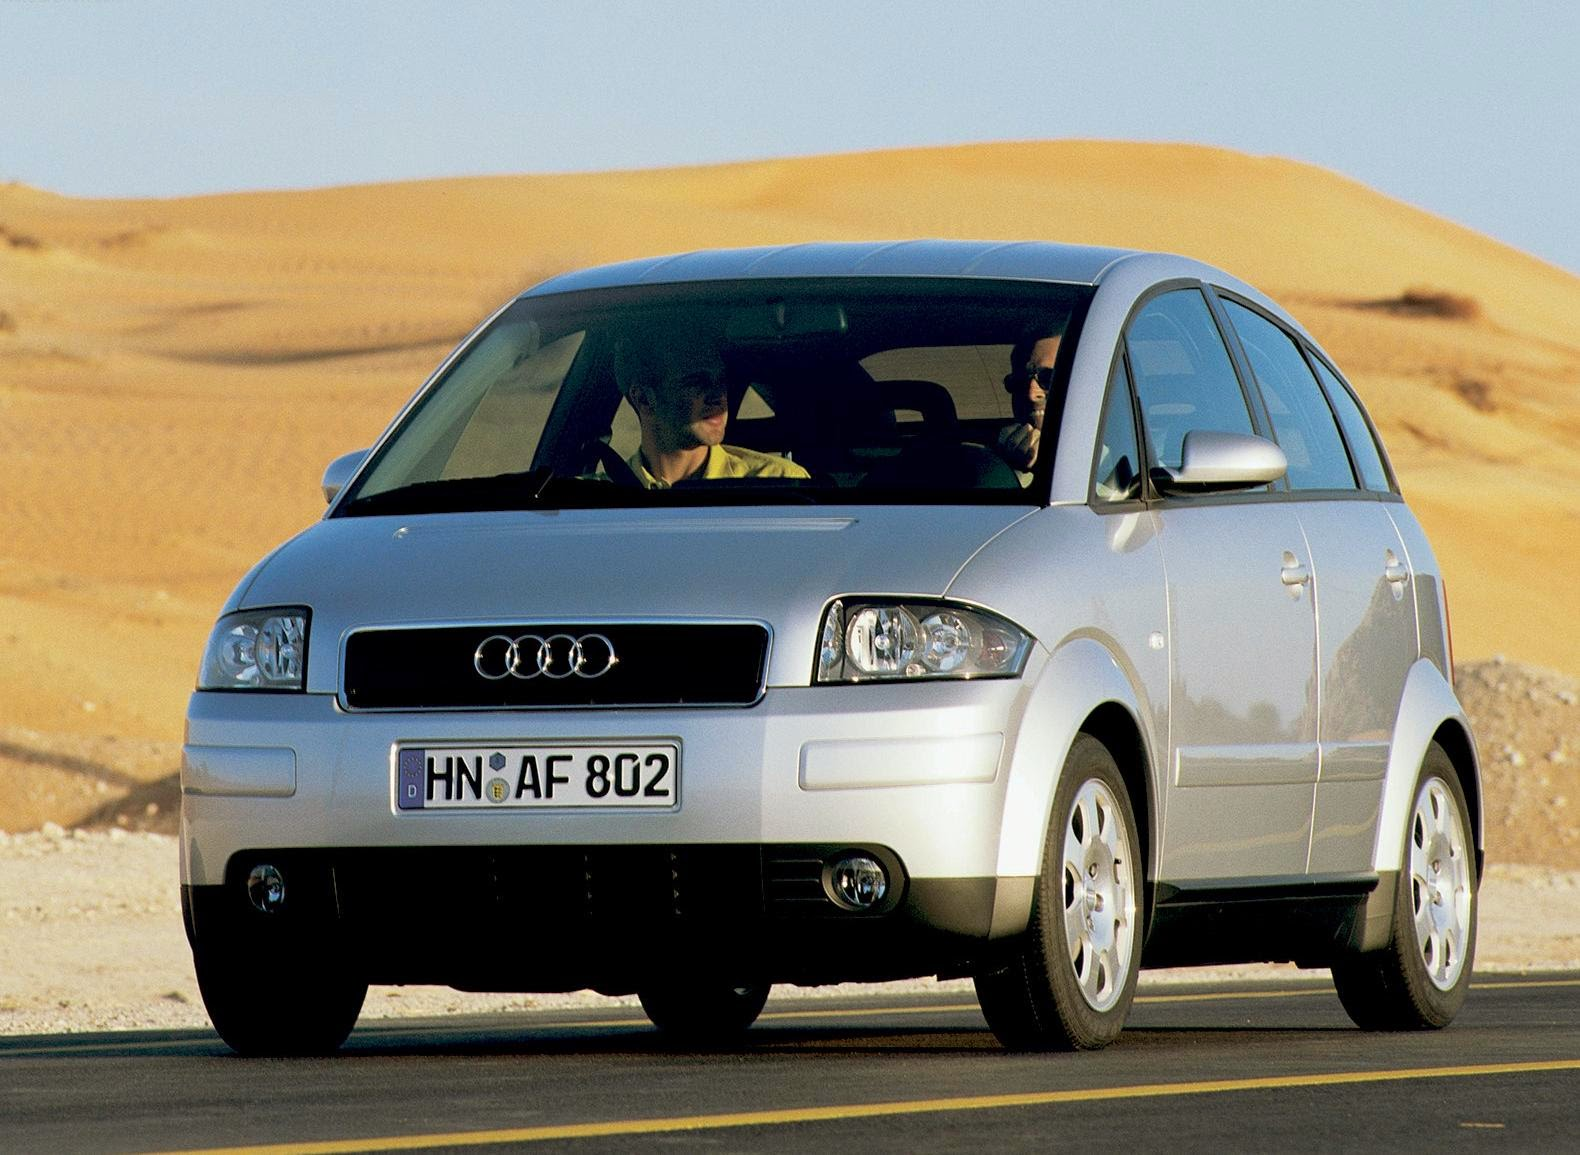 Audi A2 2001 Widescreen Wallpaper